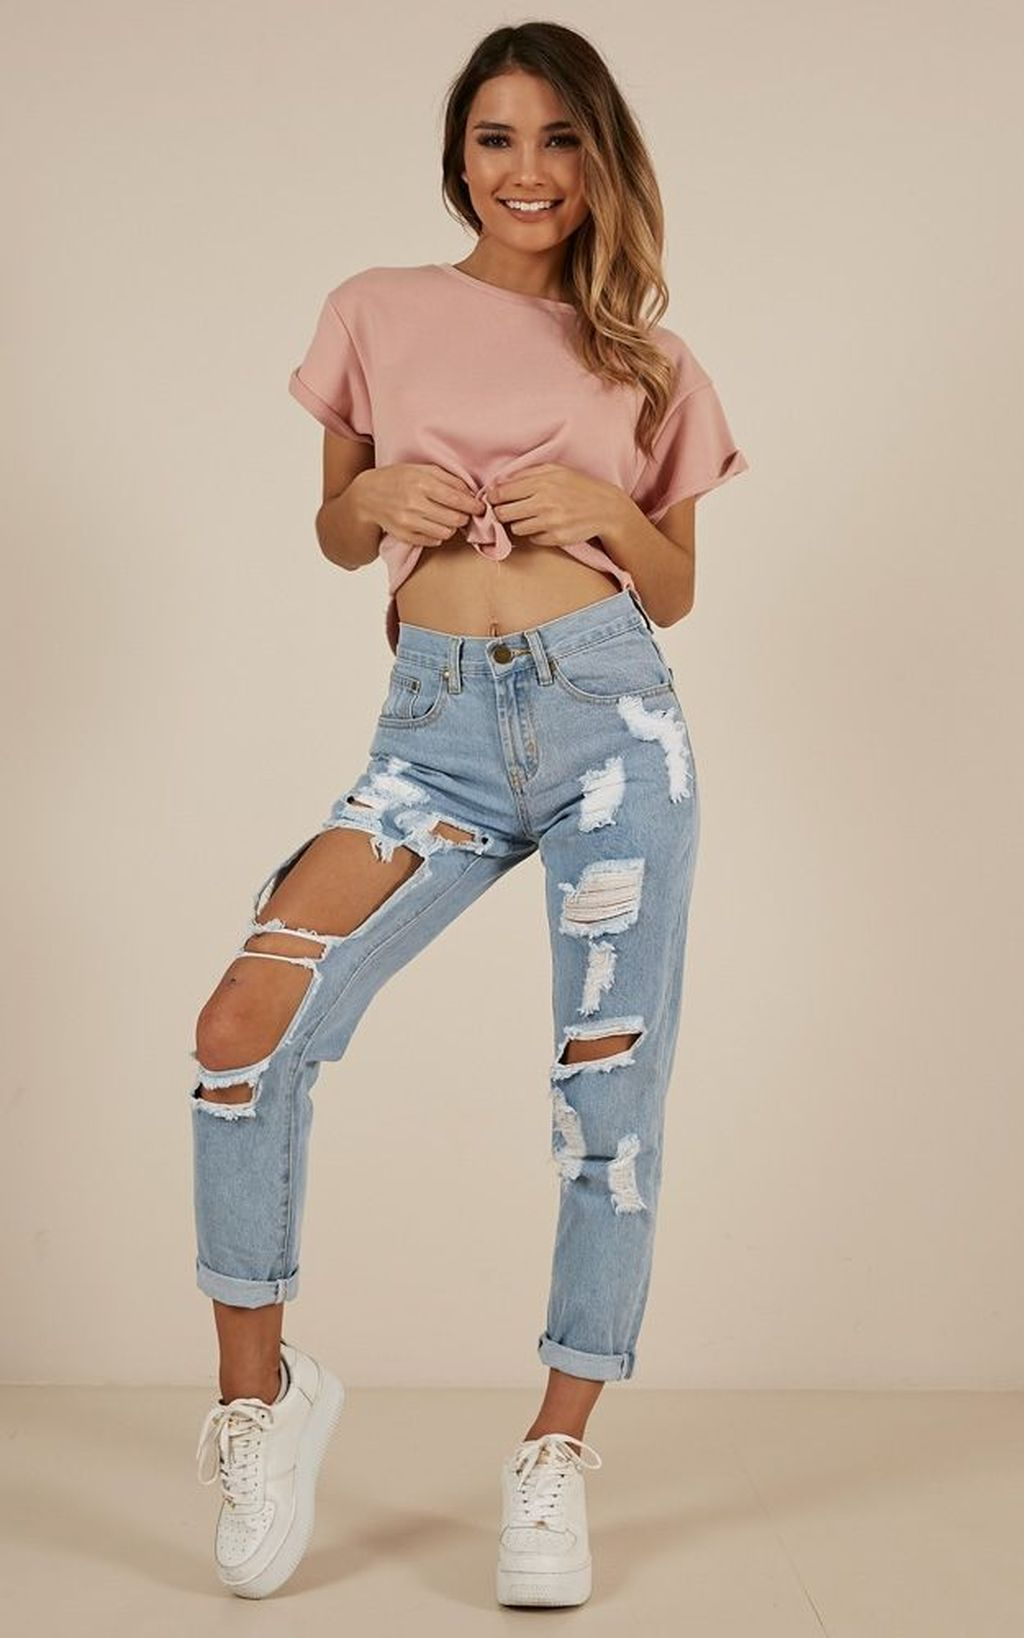 36 Amazing Ripped Jeans Outfit Ideas For Summertime Cute Ripped Jeans Womens Ripped Jeans Ripped Jeans Outfit